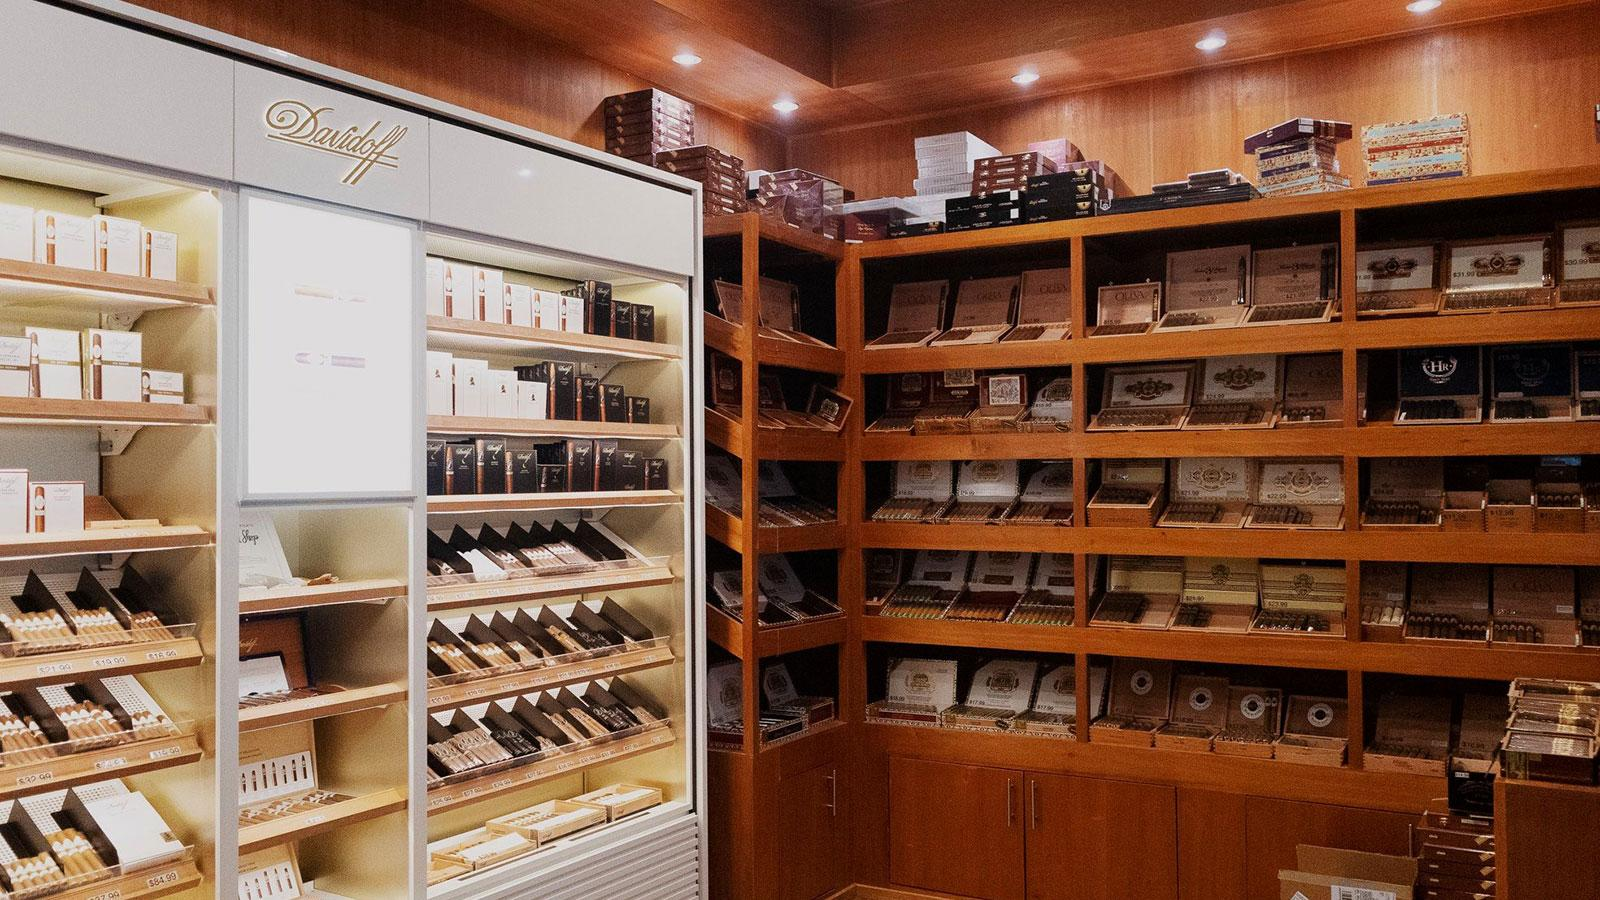 The humidor is stocked with cigars from Ashton, Padrón, Arturo Fuente, Davidoff, Avo, Oliva, HR, Zino Platinum and Plasencia..